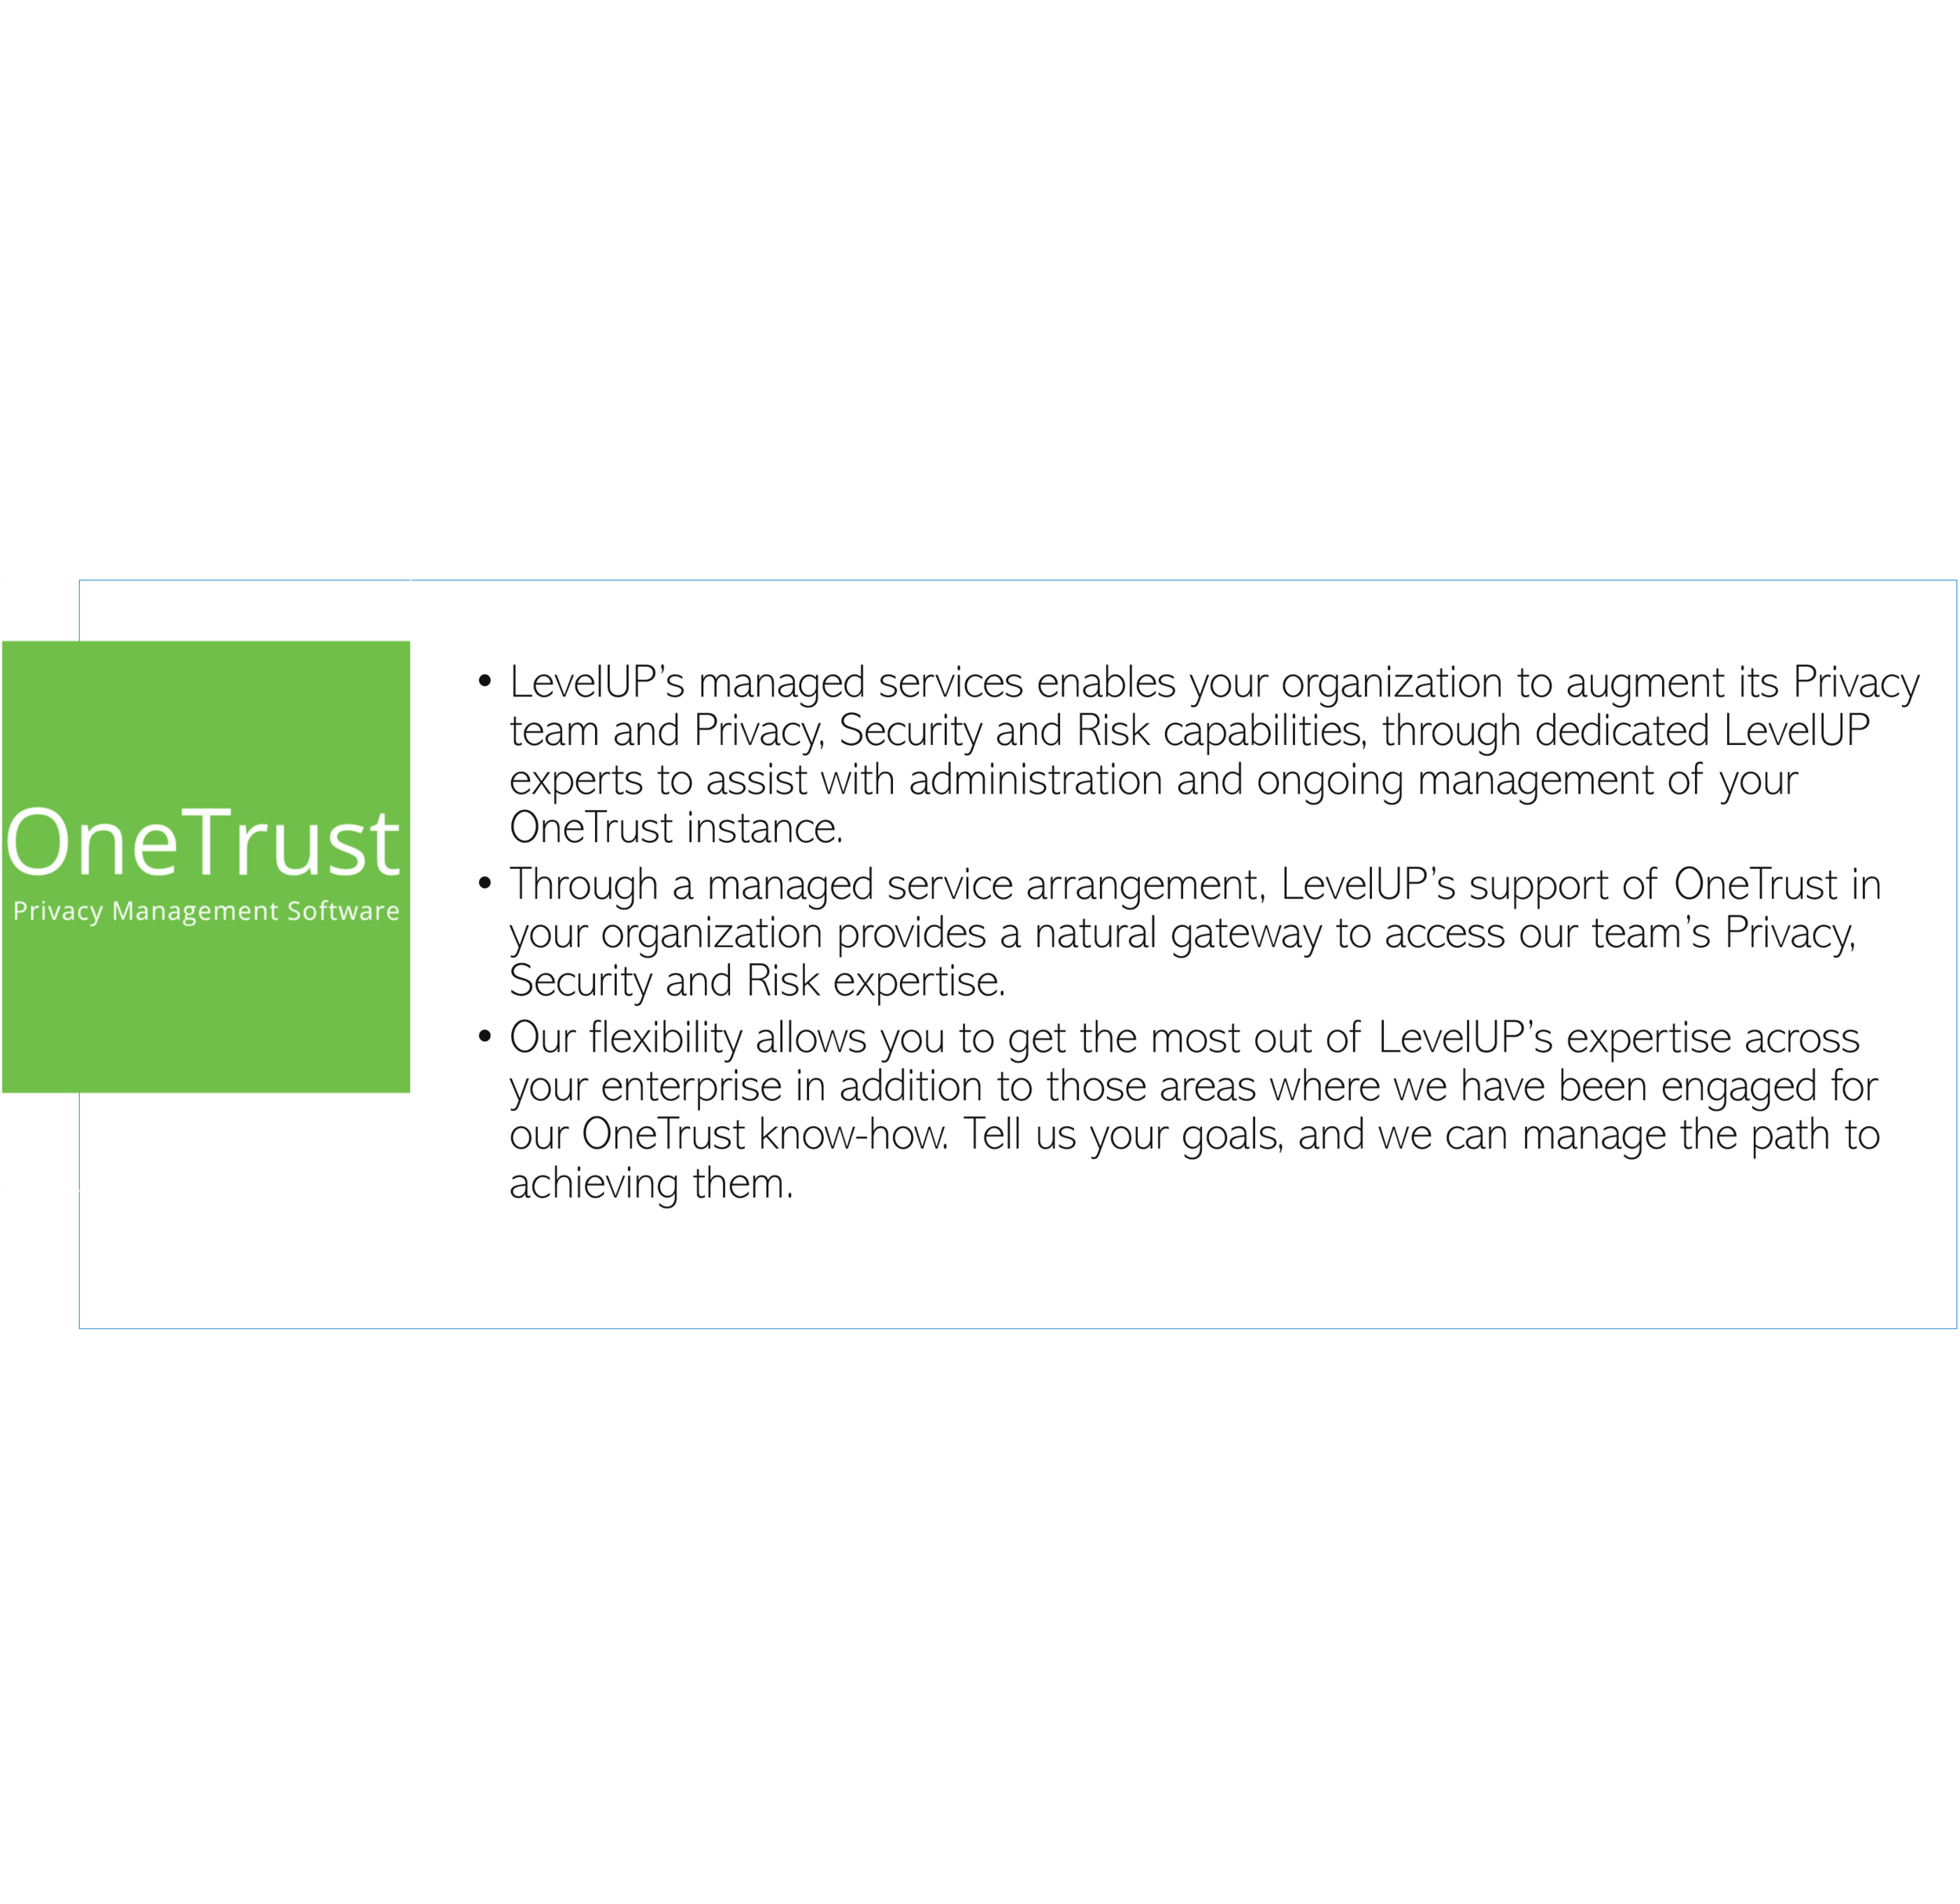 onetrust.png